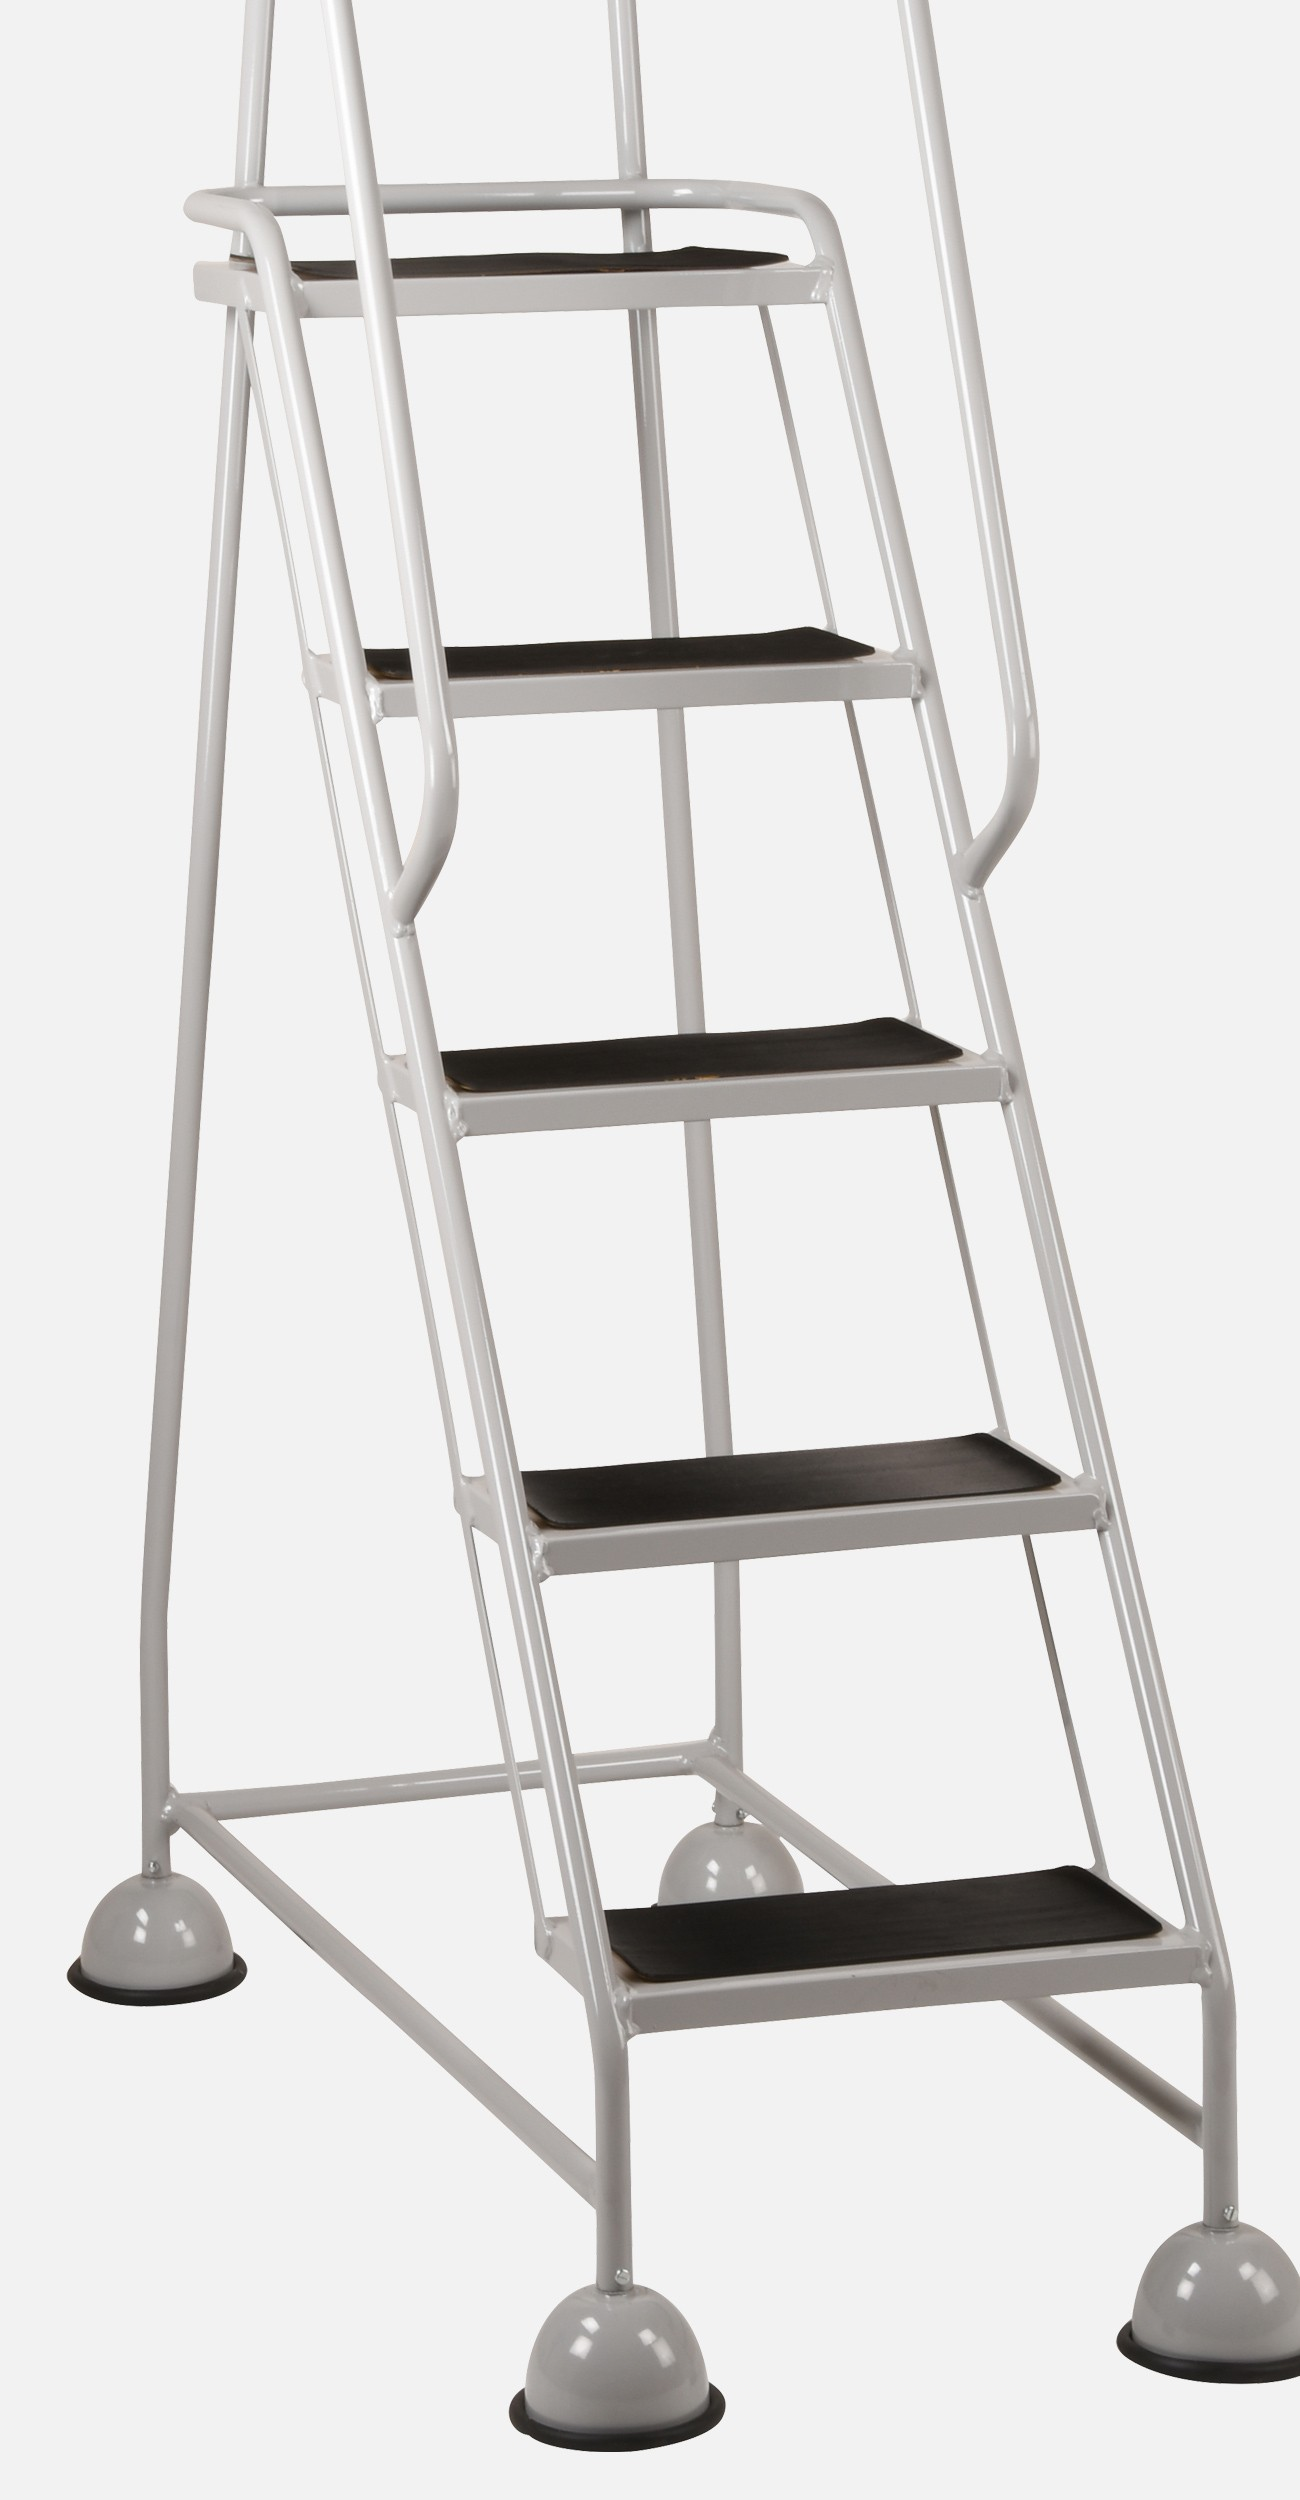 close up of mobile steps with castors